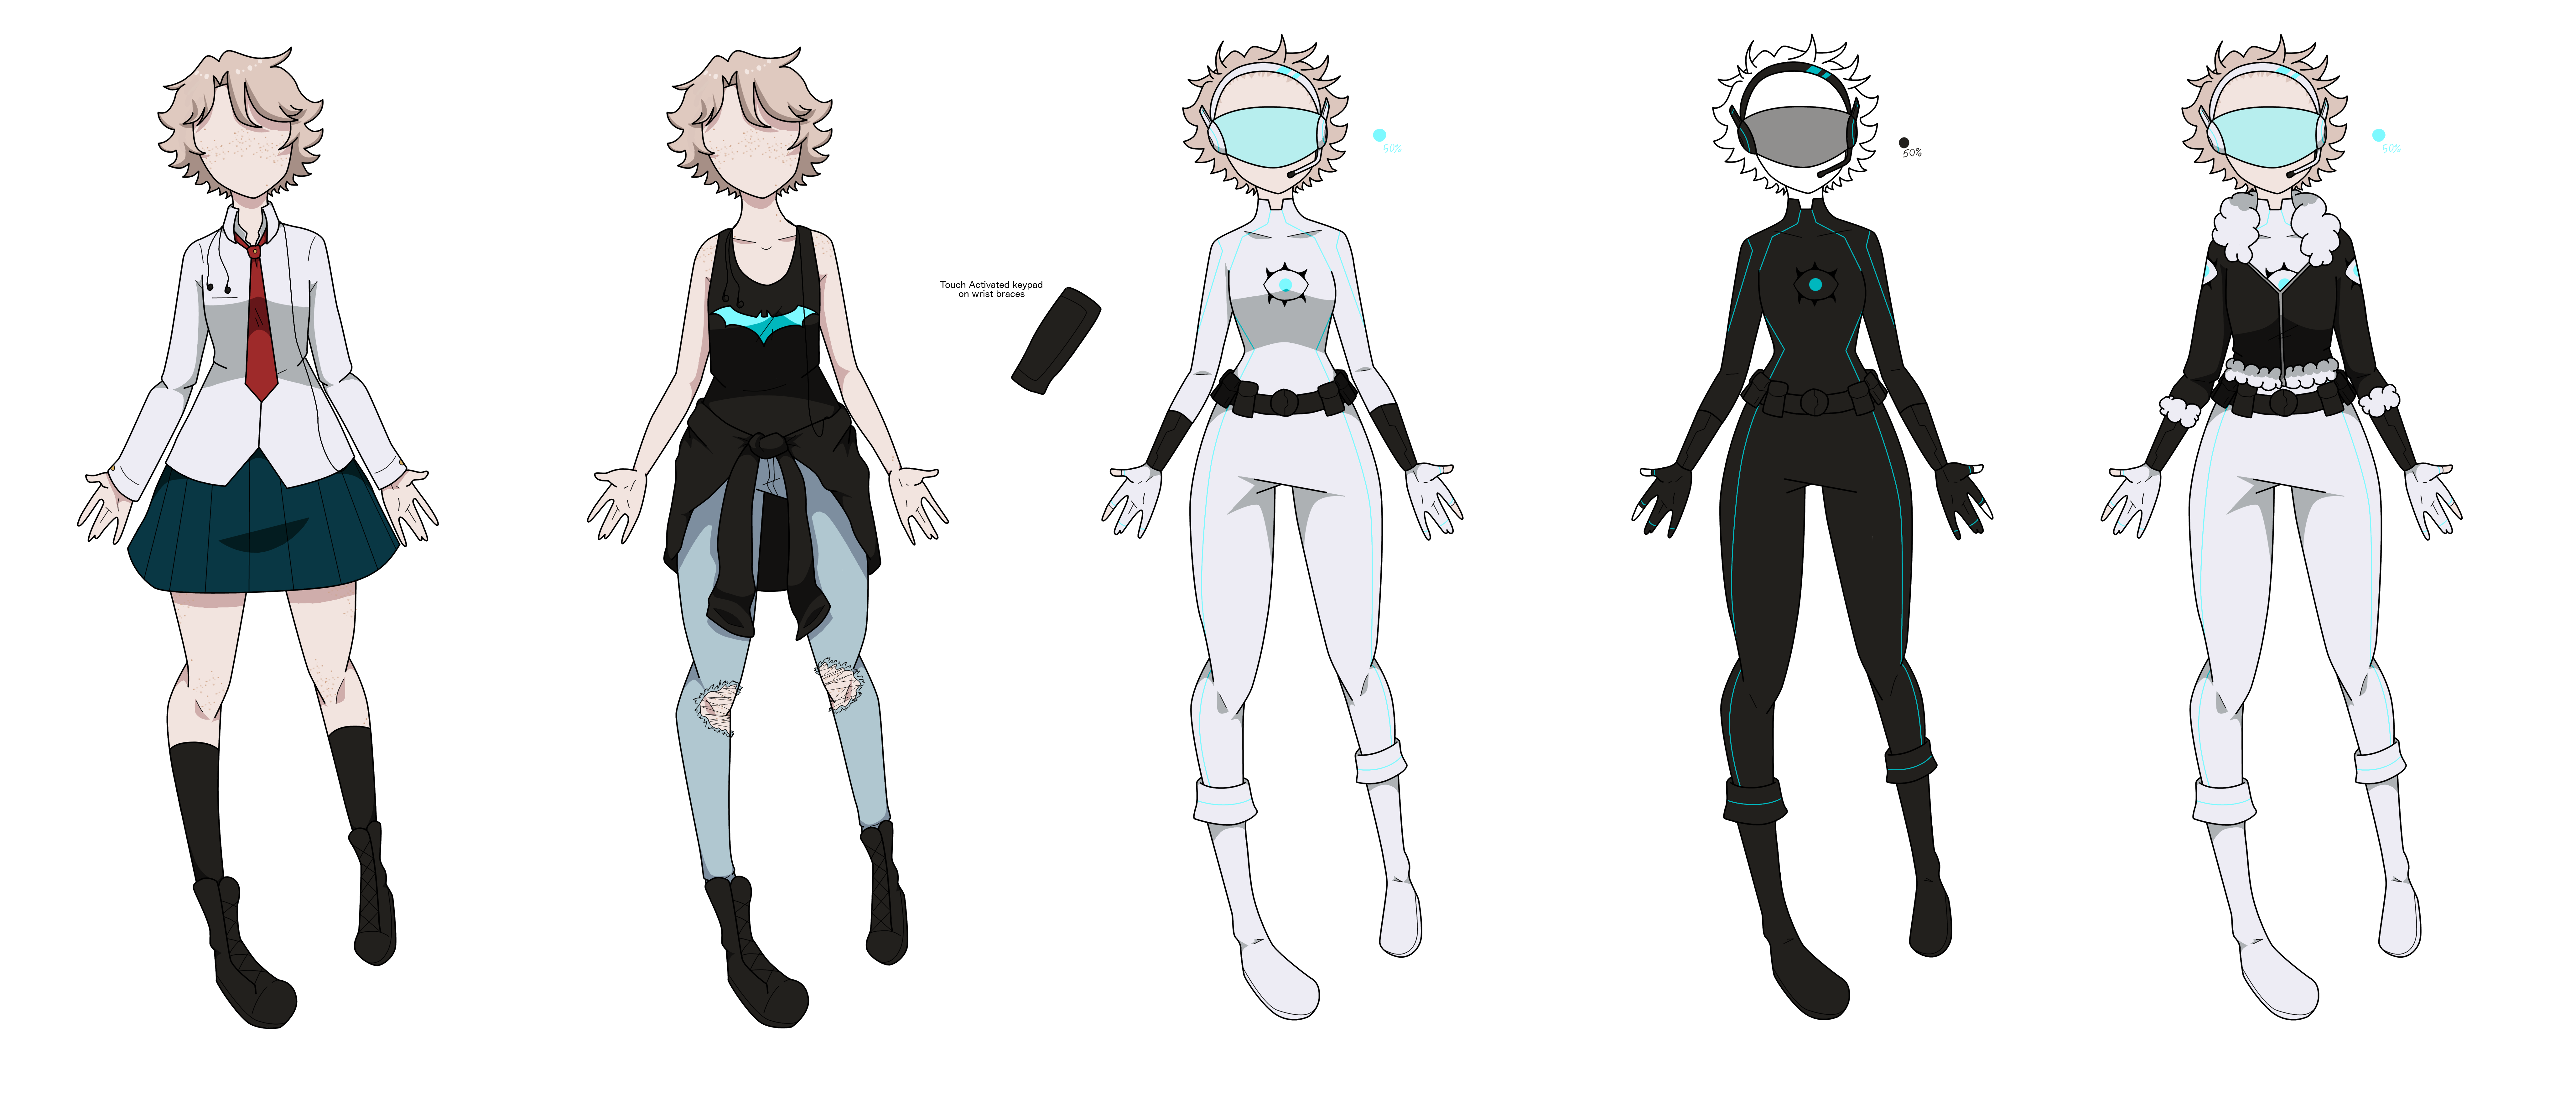 BNHA OC: Tomoe Outfits by AnnaleeTheCarver on DeviantArt